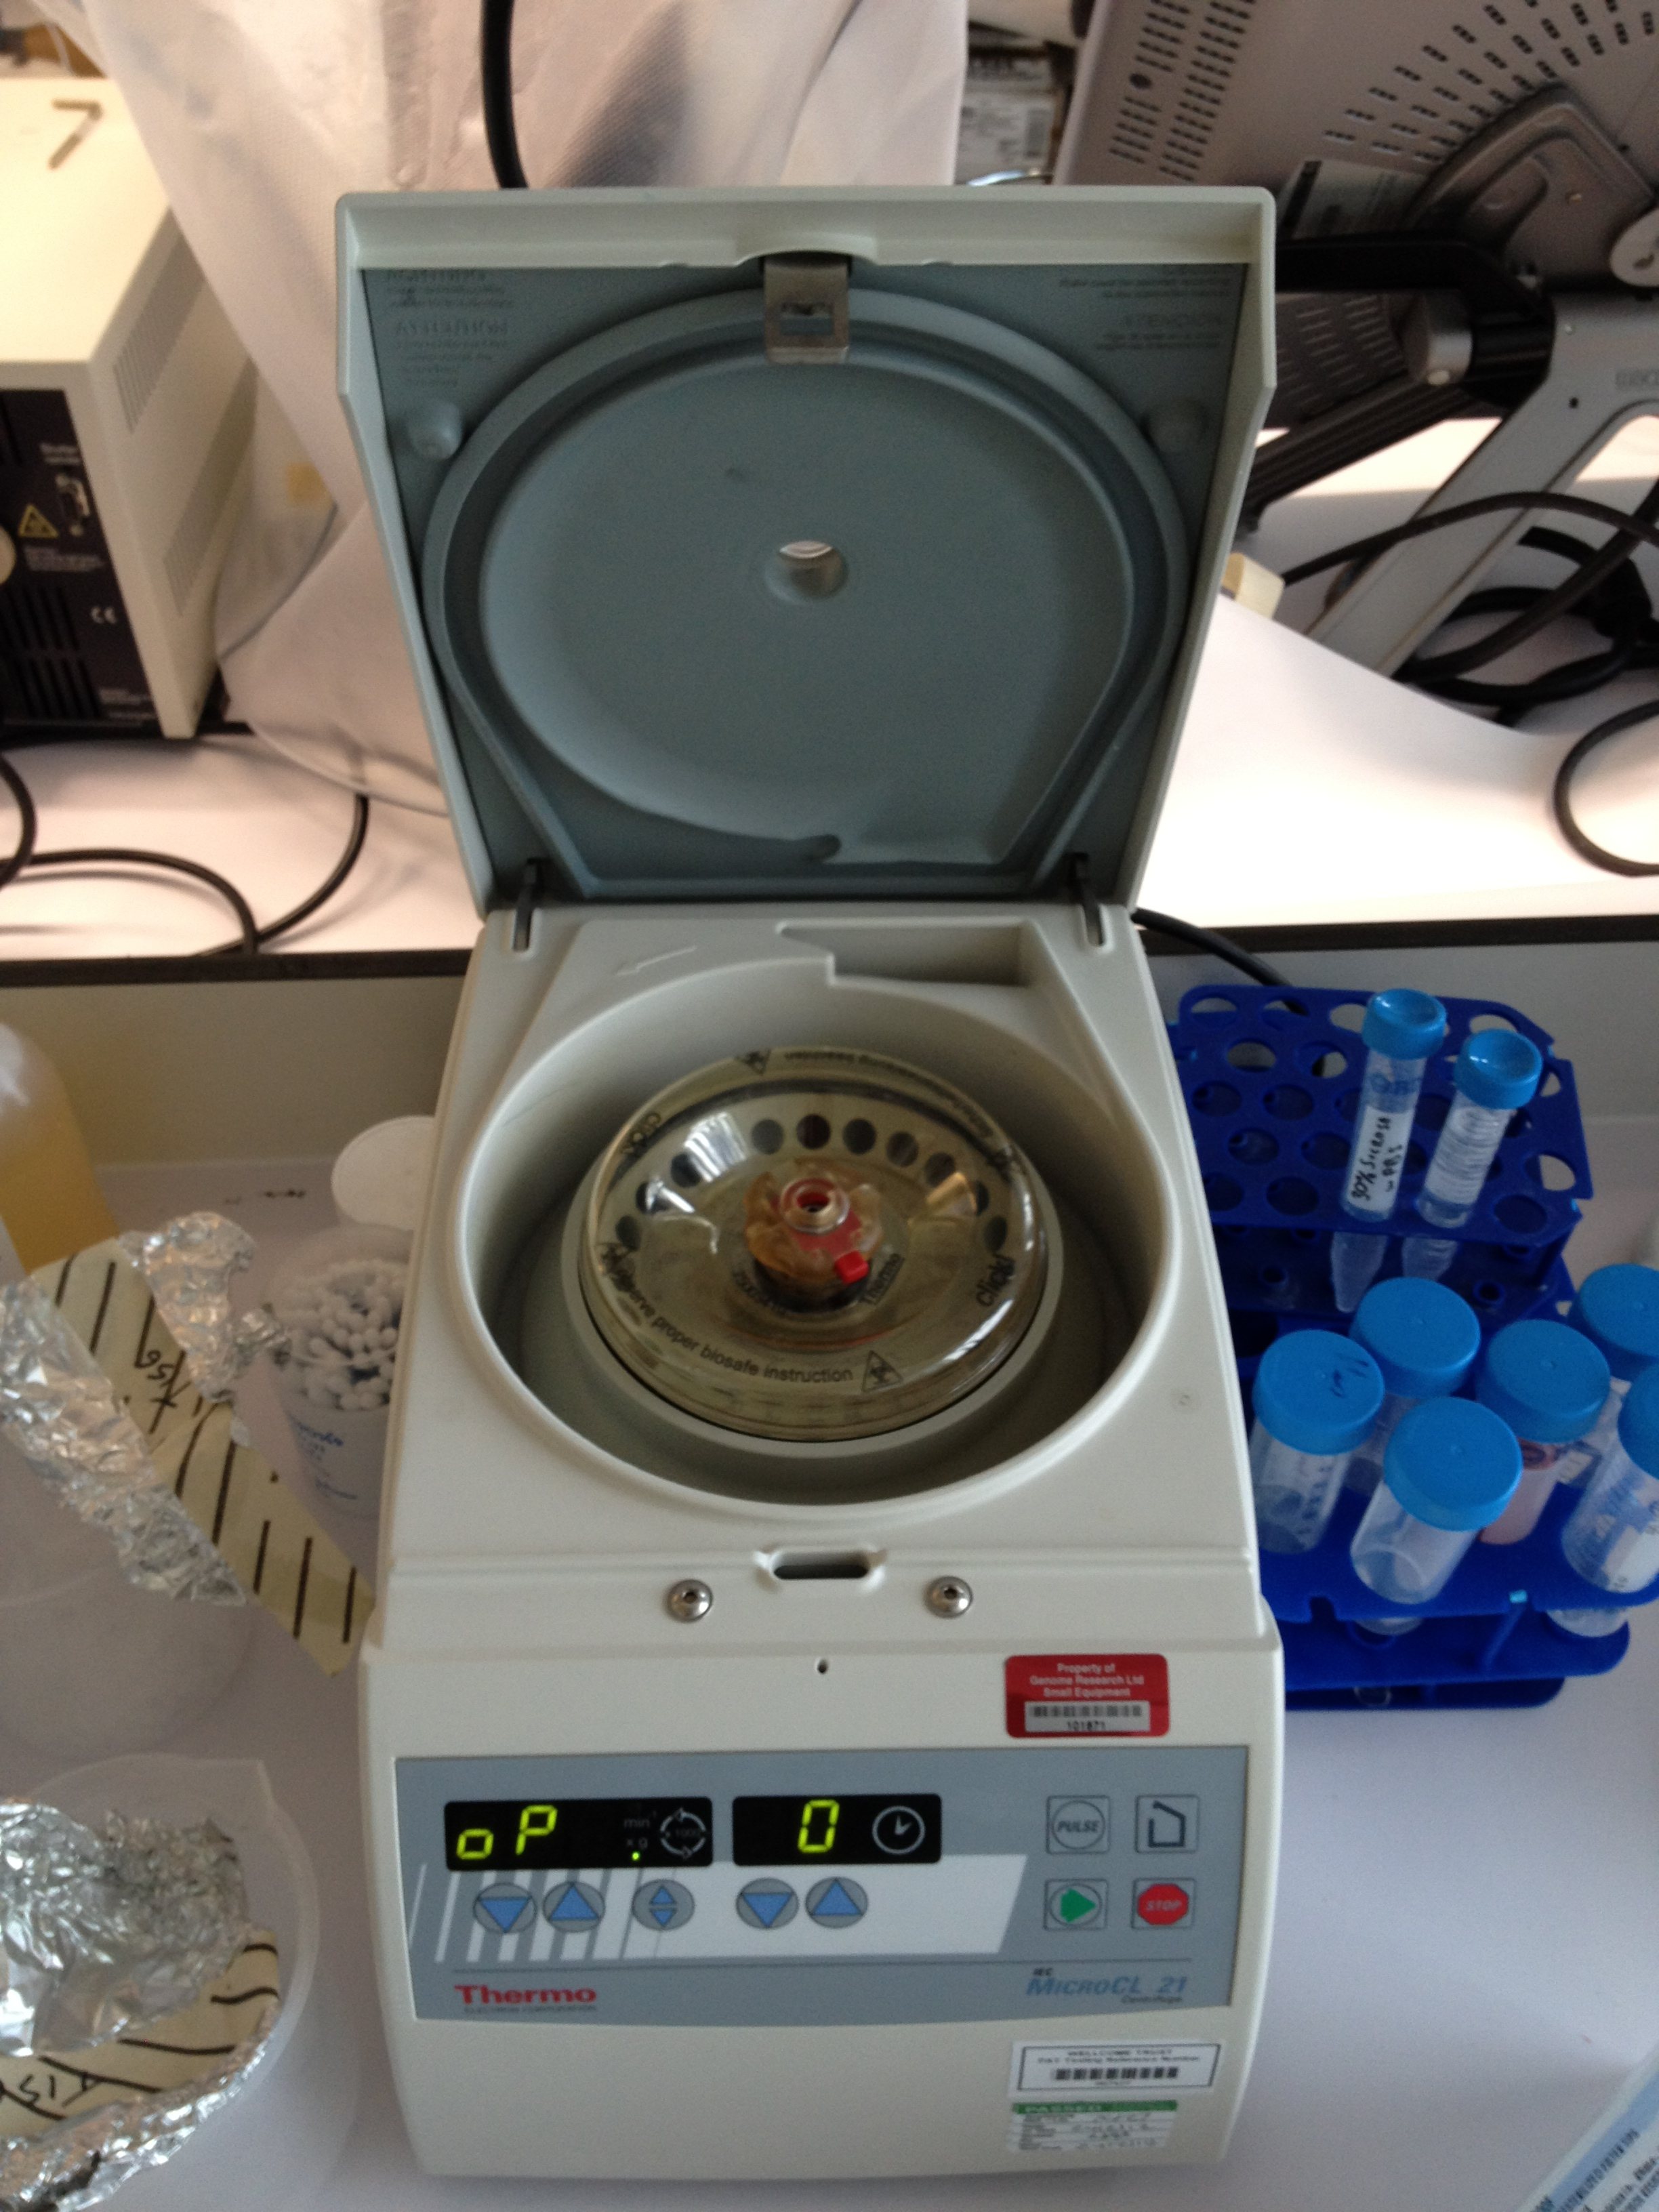 File Thermo Centrifuge Jpg Wikimedia Commons